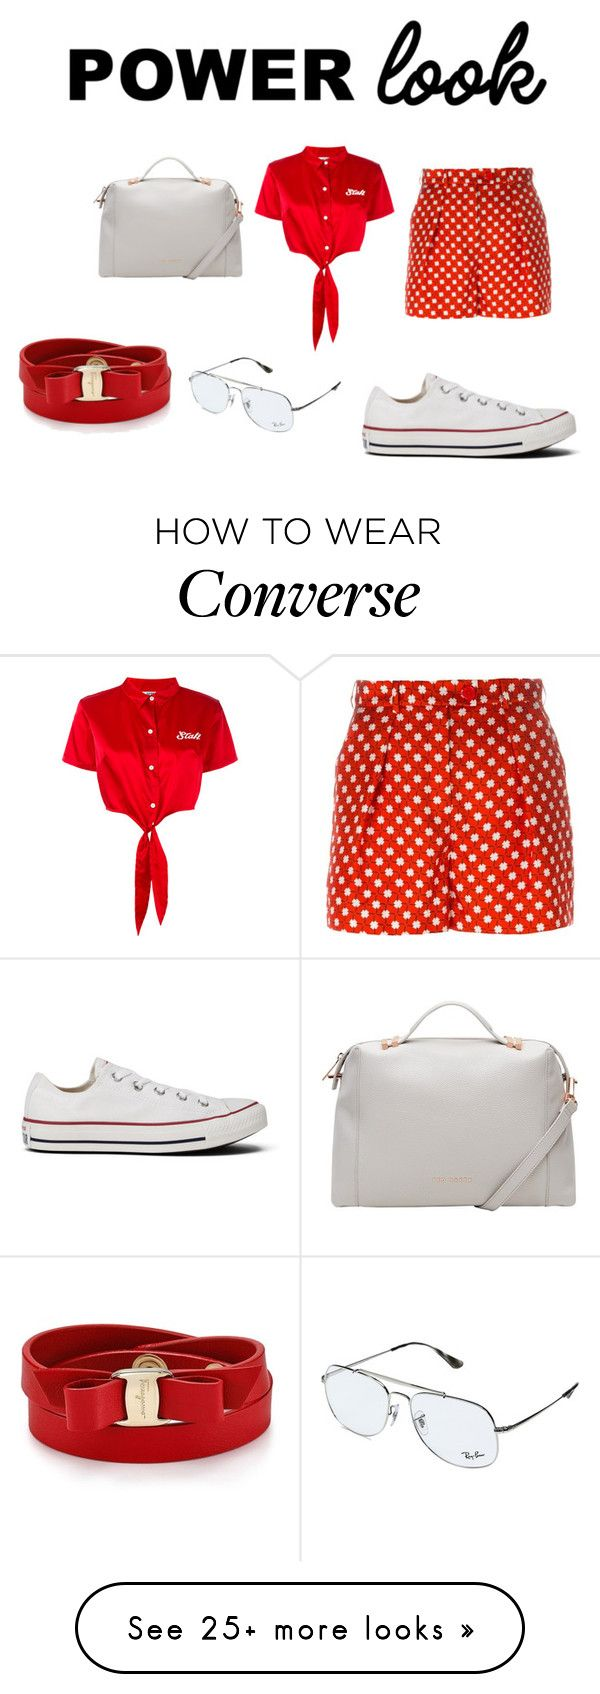 """""""power look"""" by sveta93 on Polyvore featuring Carven, GCDS, Converse, Ted Baker, Ray-Ban and Salvatore Ferragamo"""